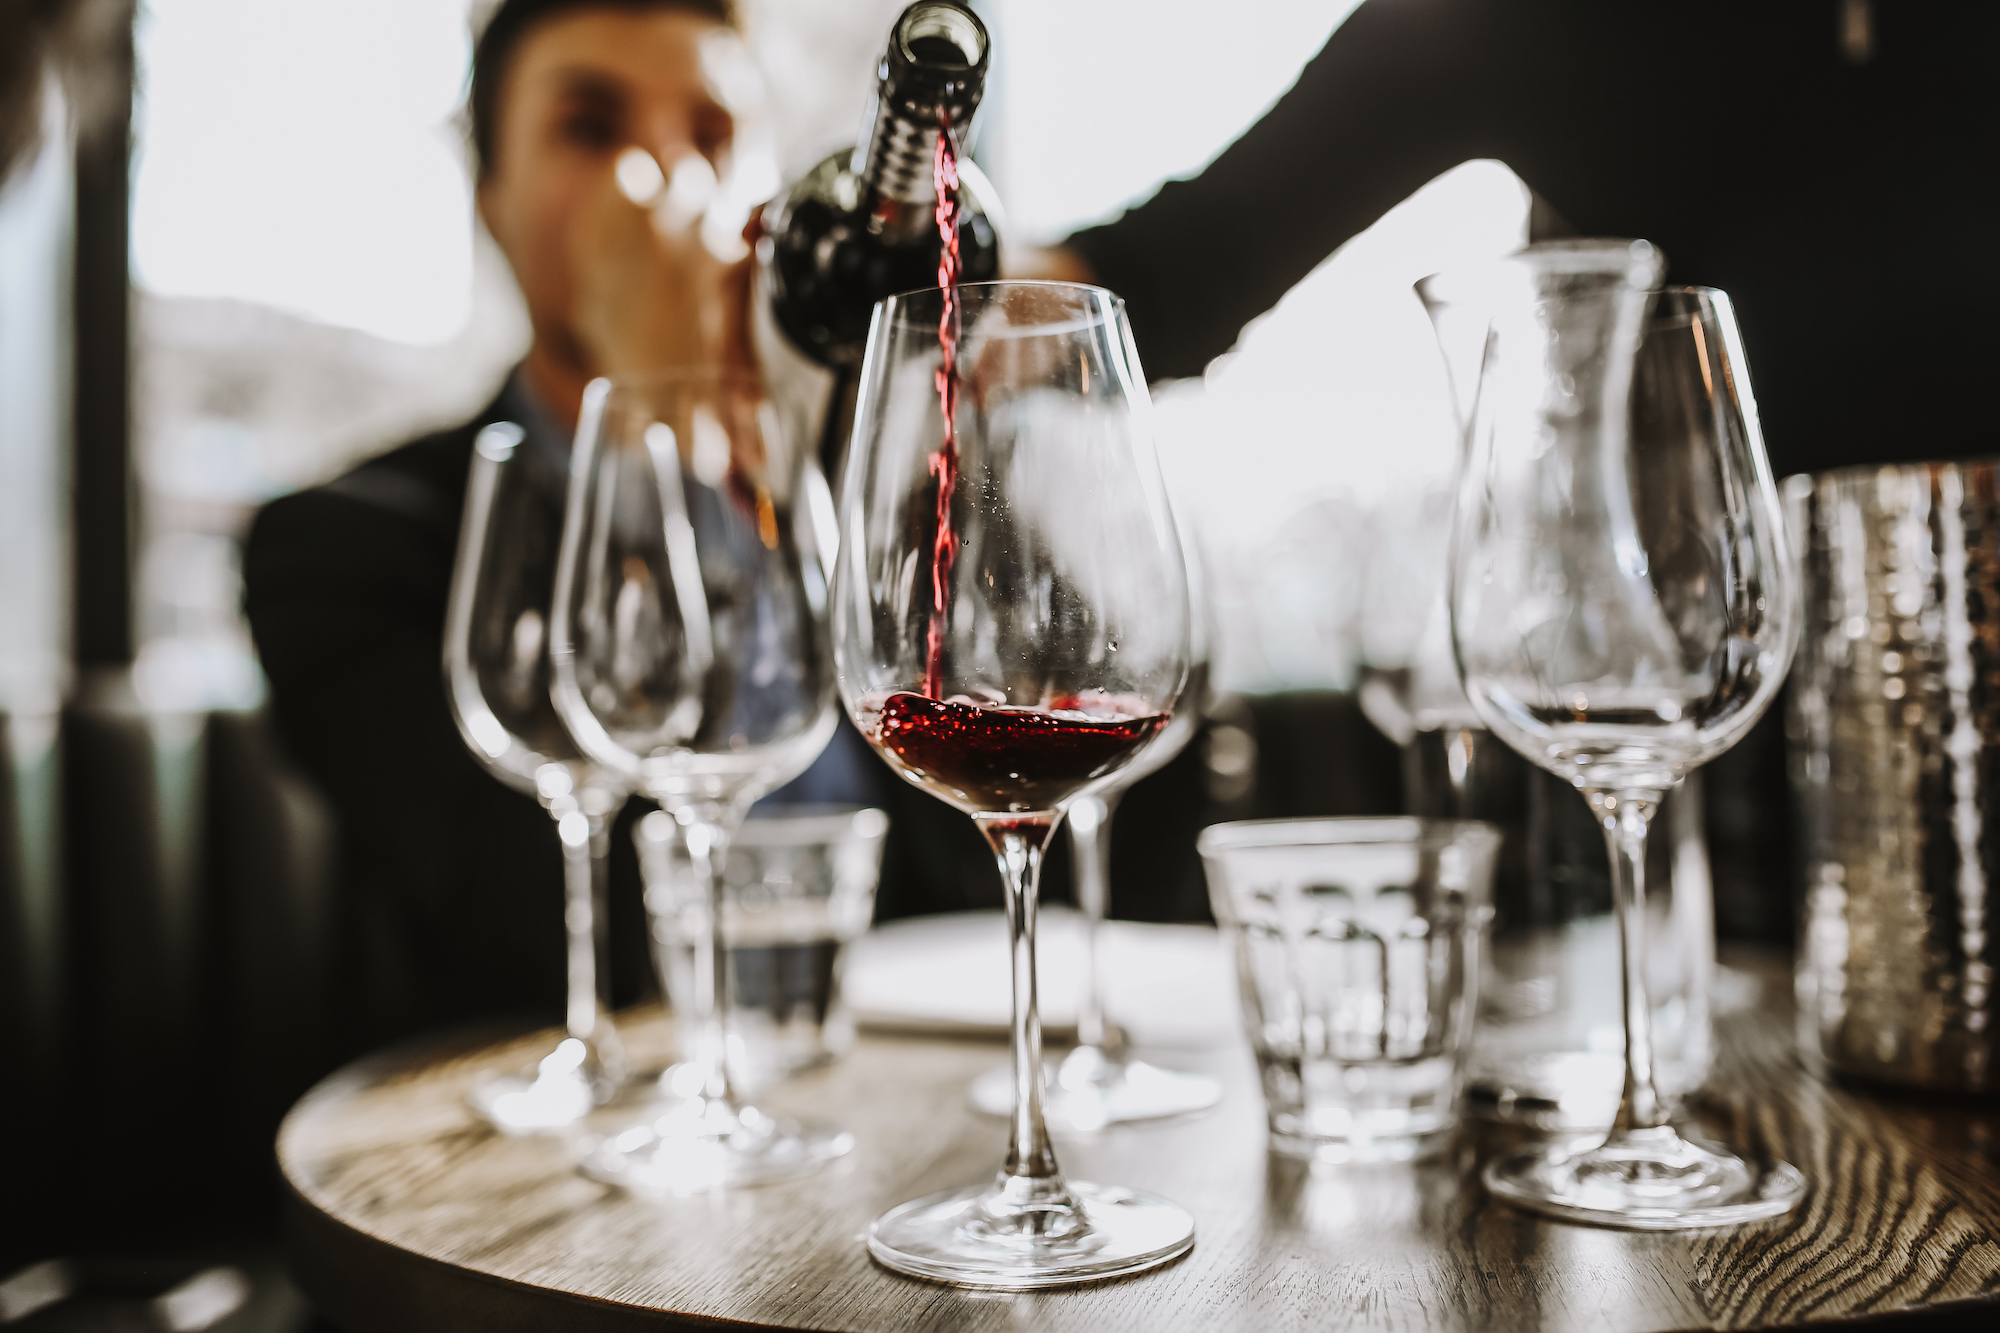 A sommelier mostly out of frame pours a glass of red wine for a customer